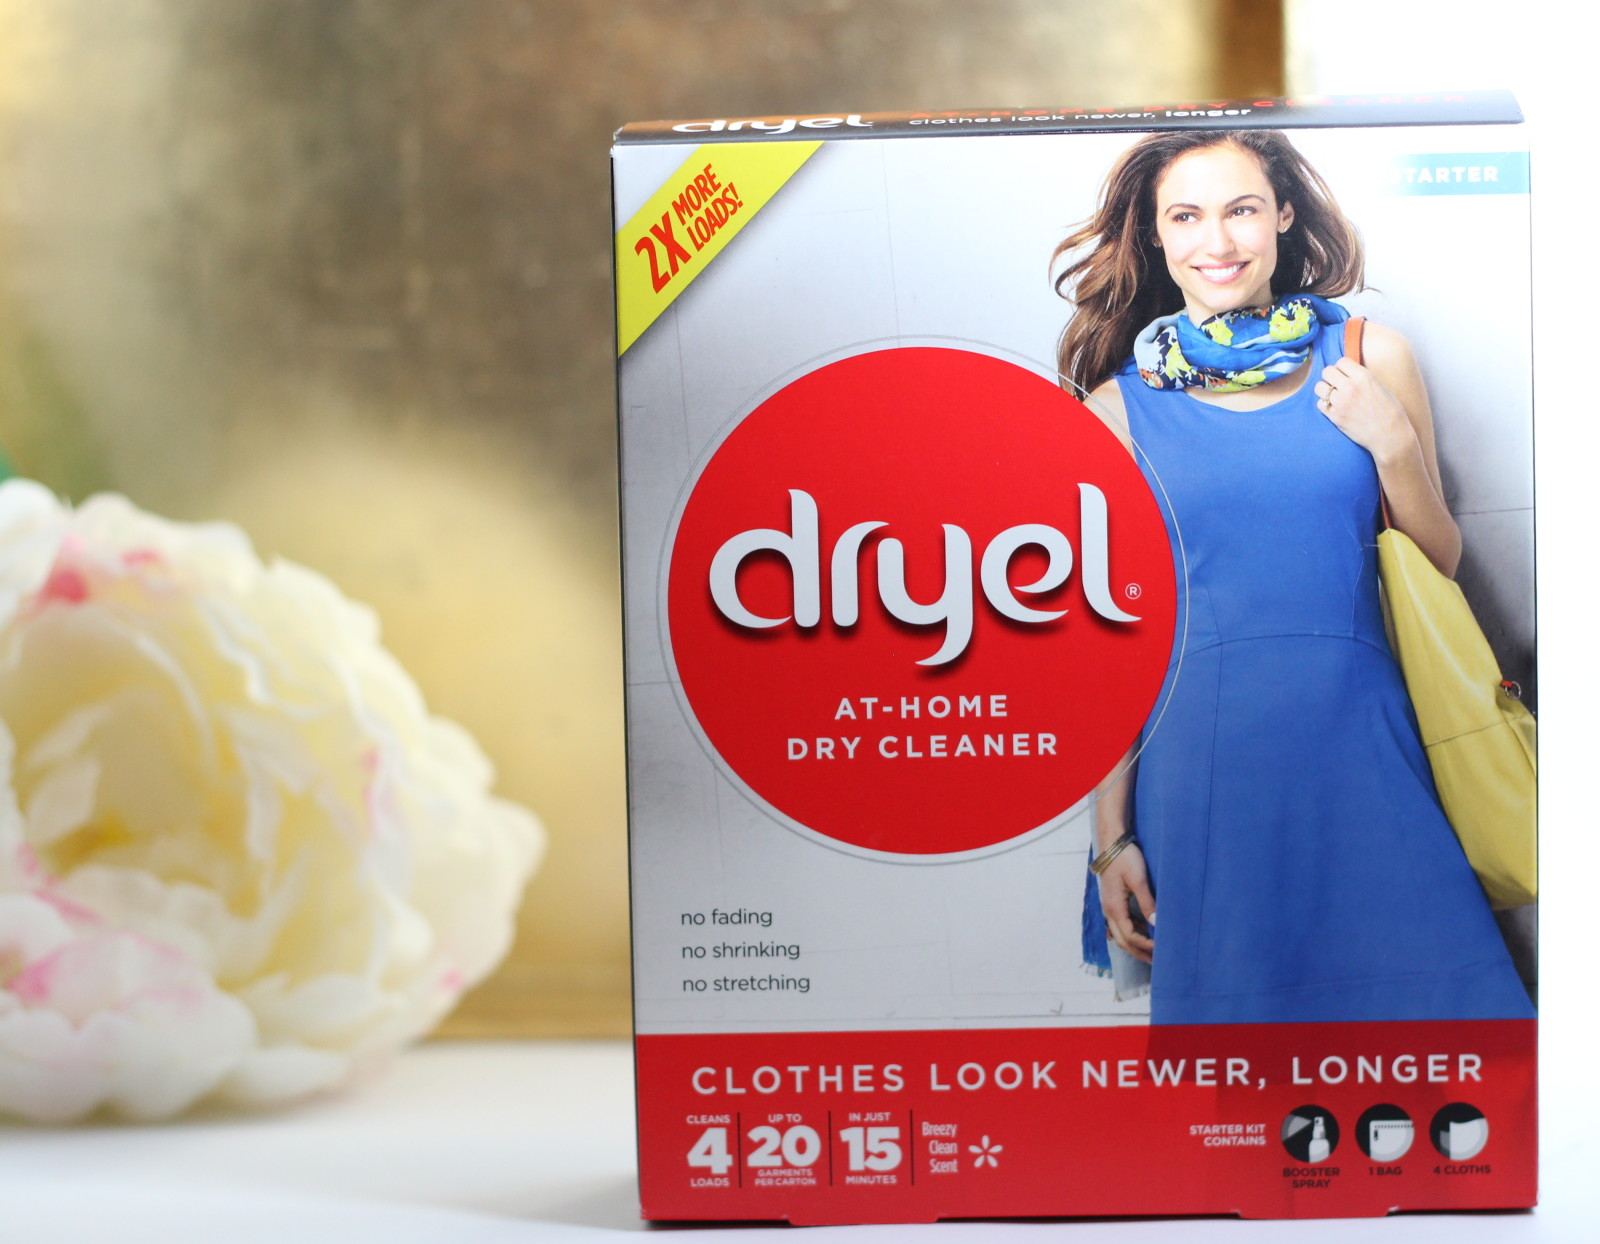 At-Home Dry Cleaning with Dryel